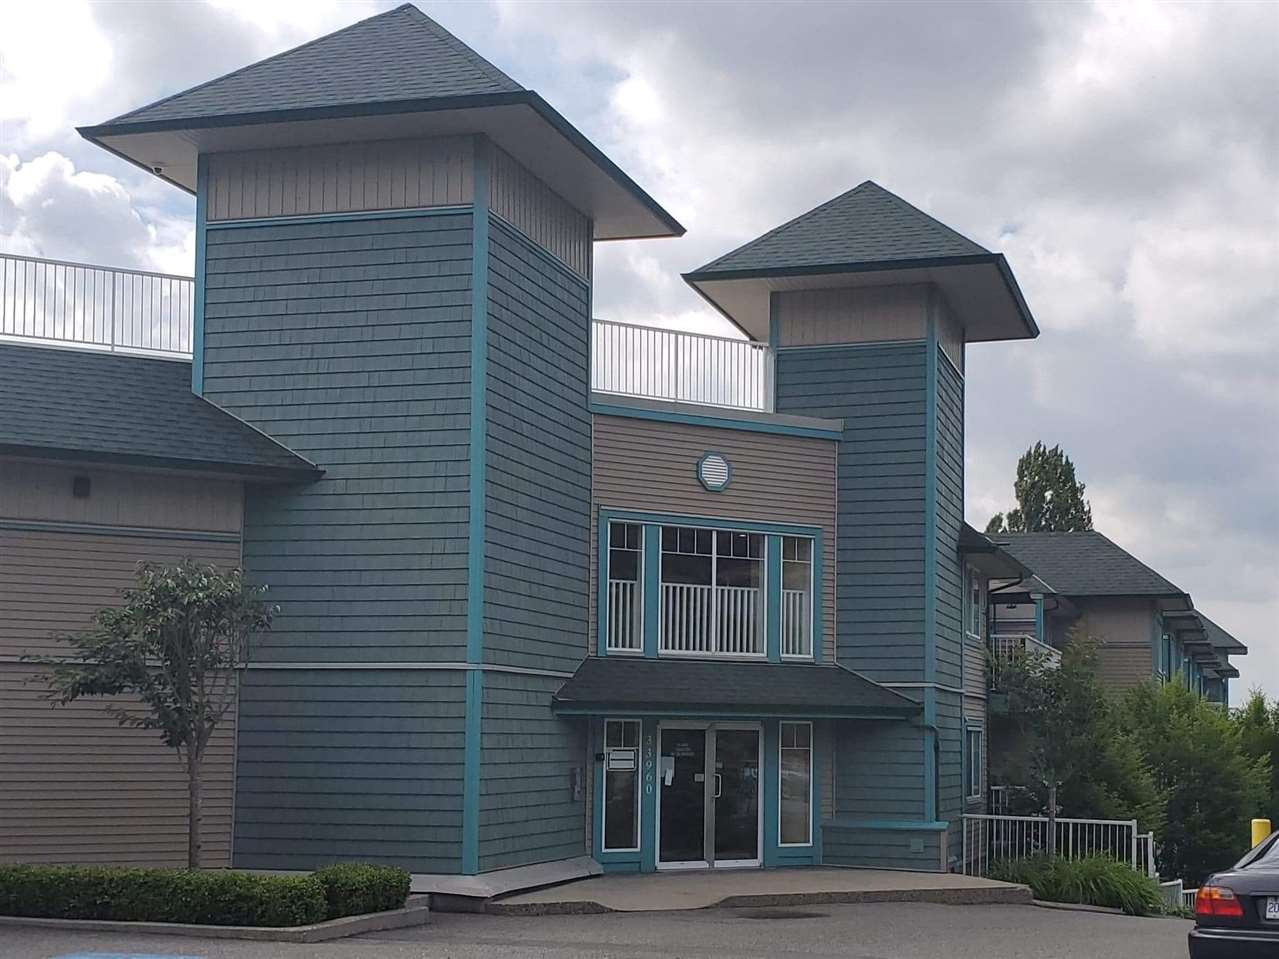 407 33960 OLD YALE ROAD - Central Abbotsford Apartment/Condo for sale, 2 Bedrooms (R2499608) - #1